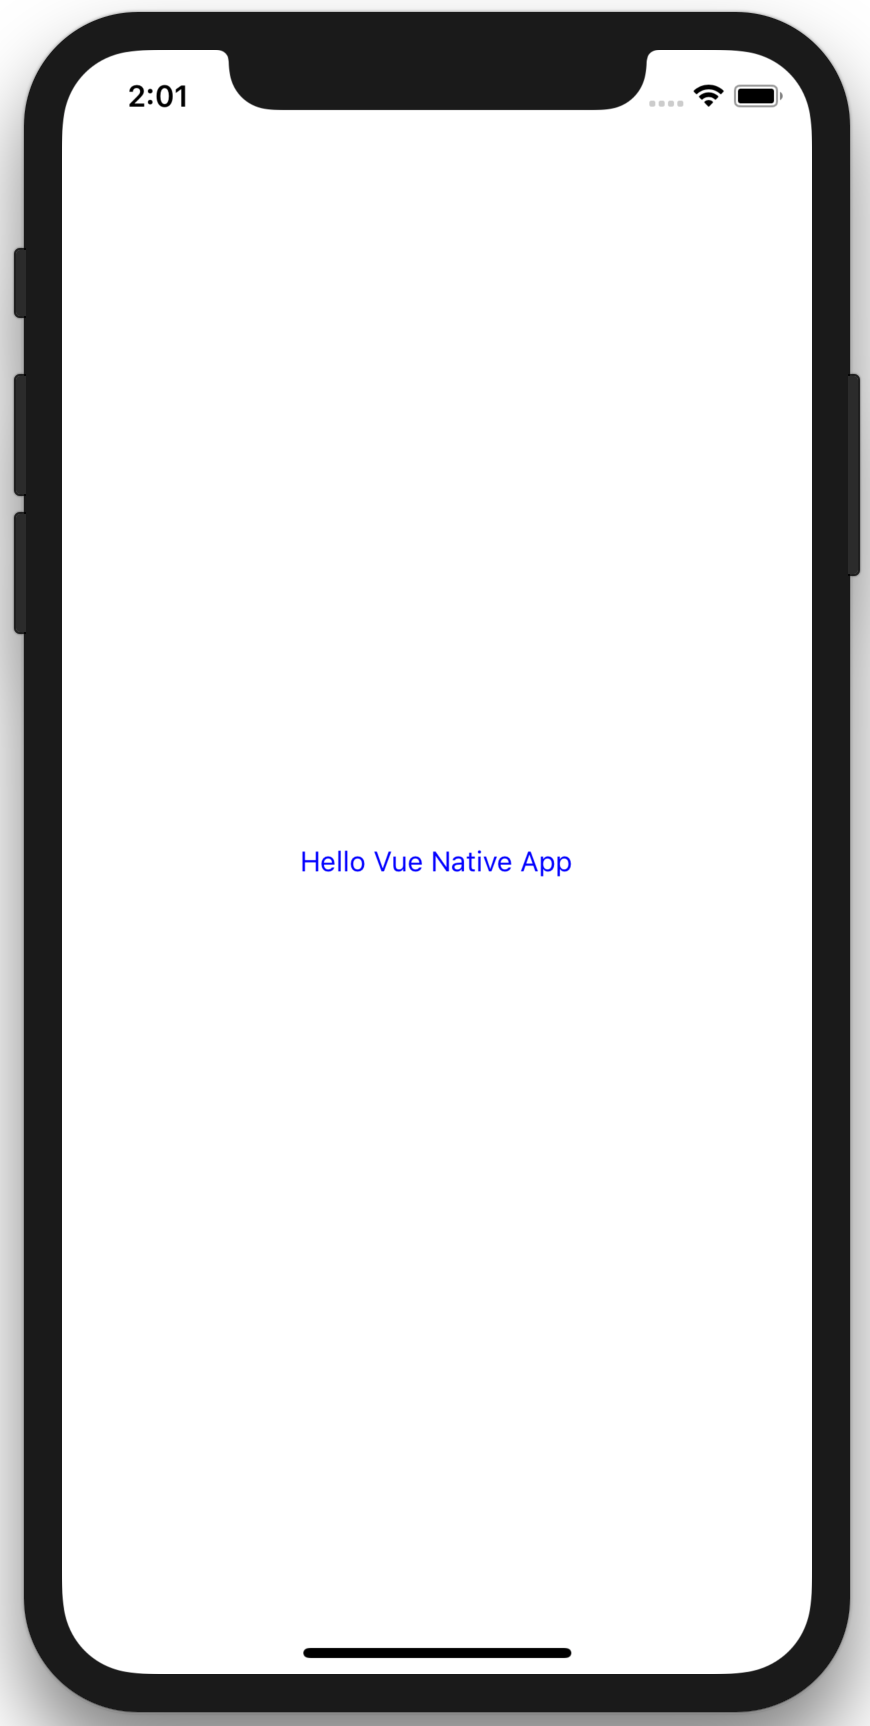 iPhone X - 11.4 2018-06-13 14-01-33.png